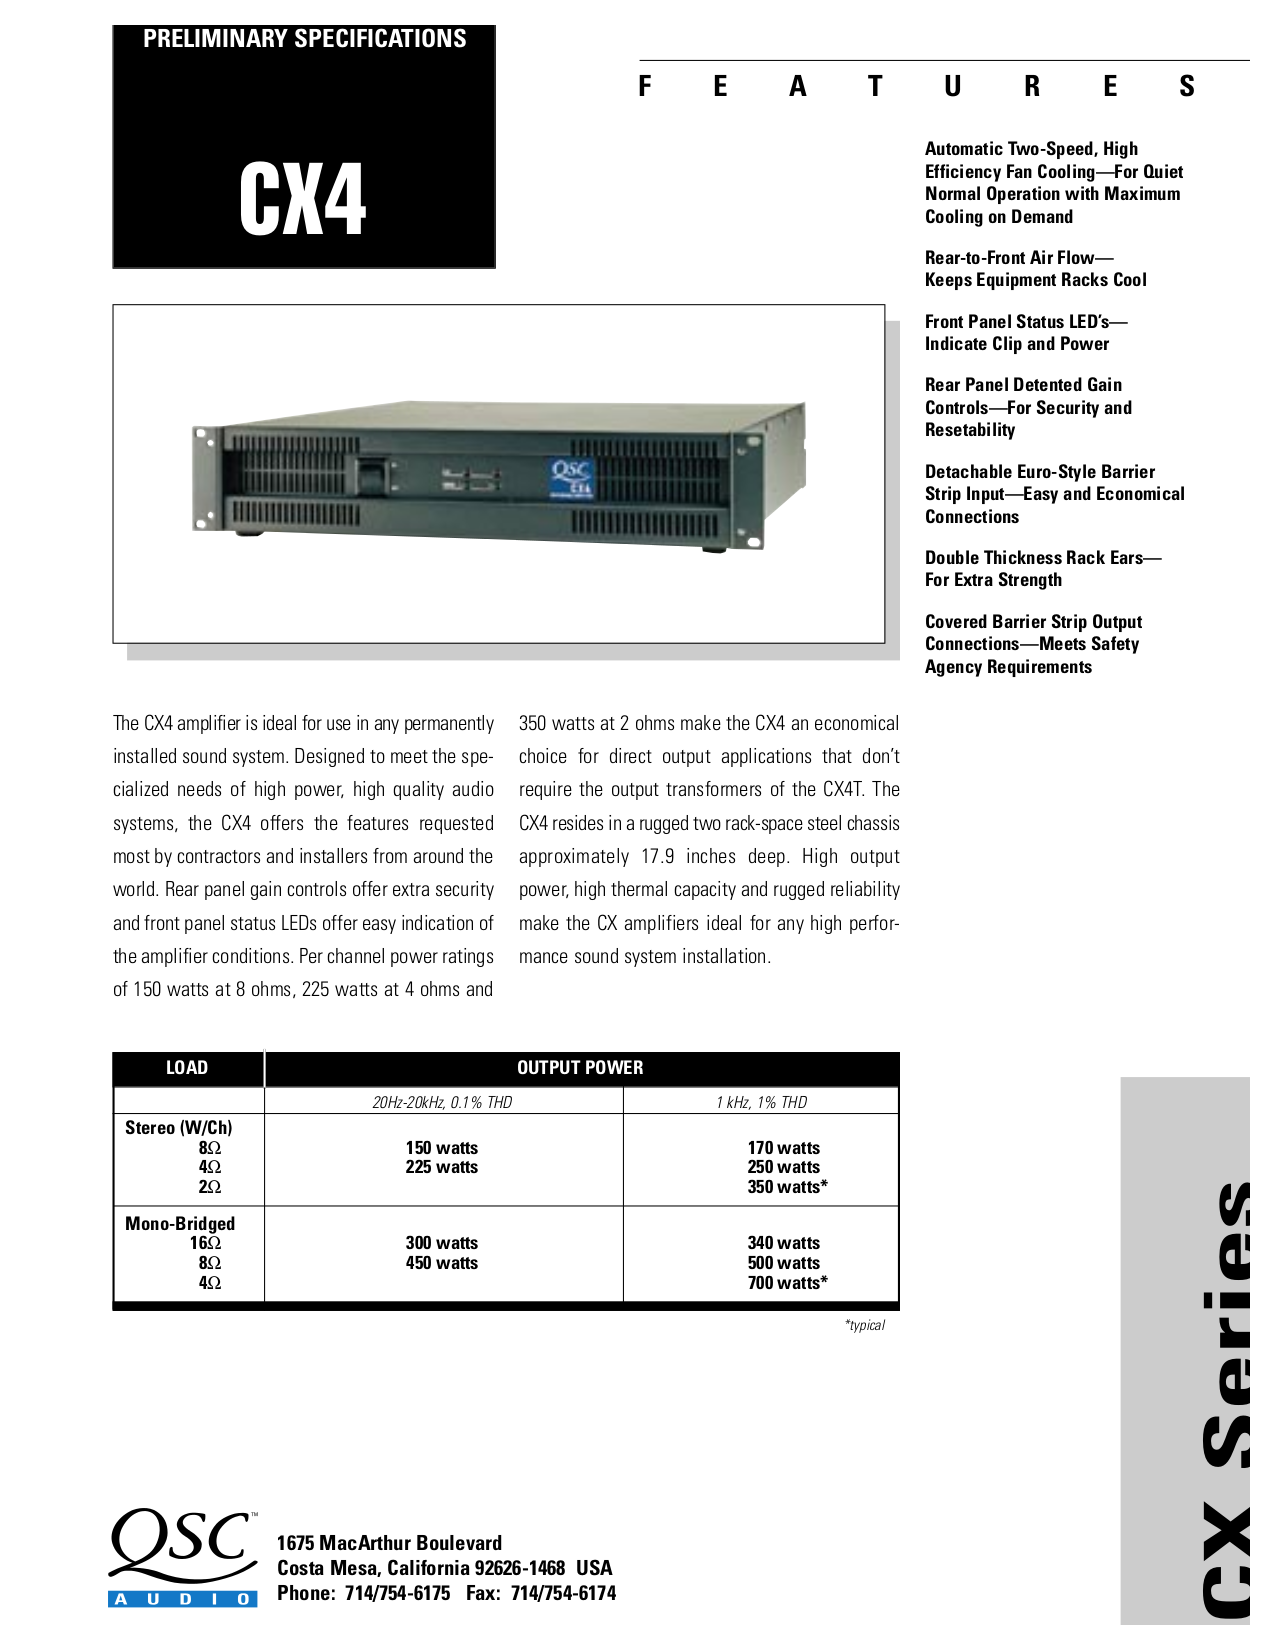 download free pdf for qsc cx4 amp manual rh umlib com CX4 Storm Accessories CX4 SBR